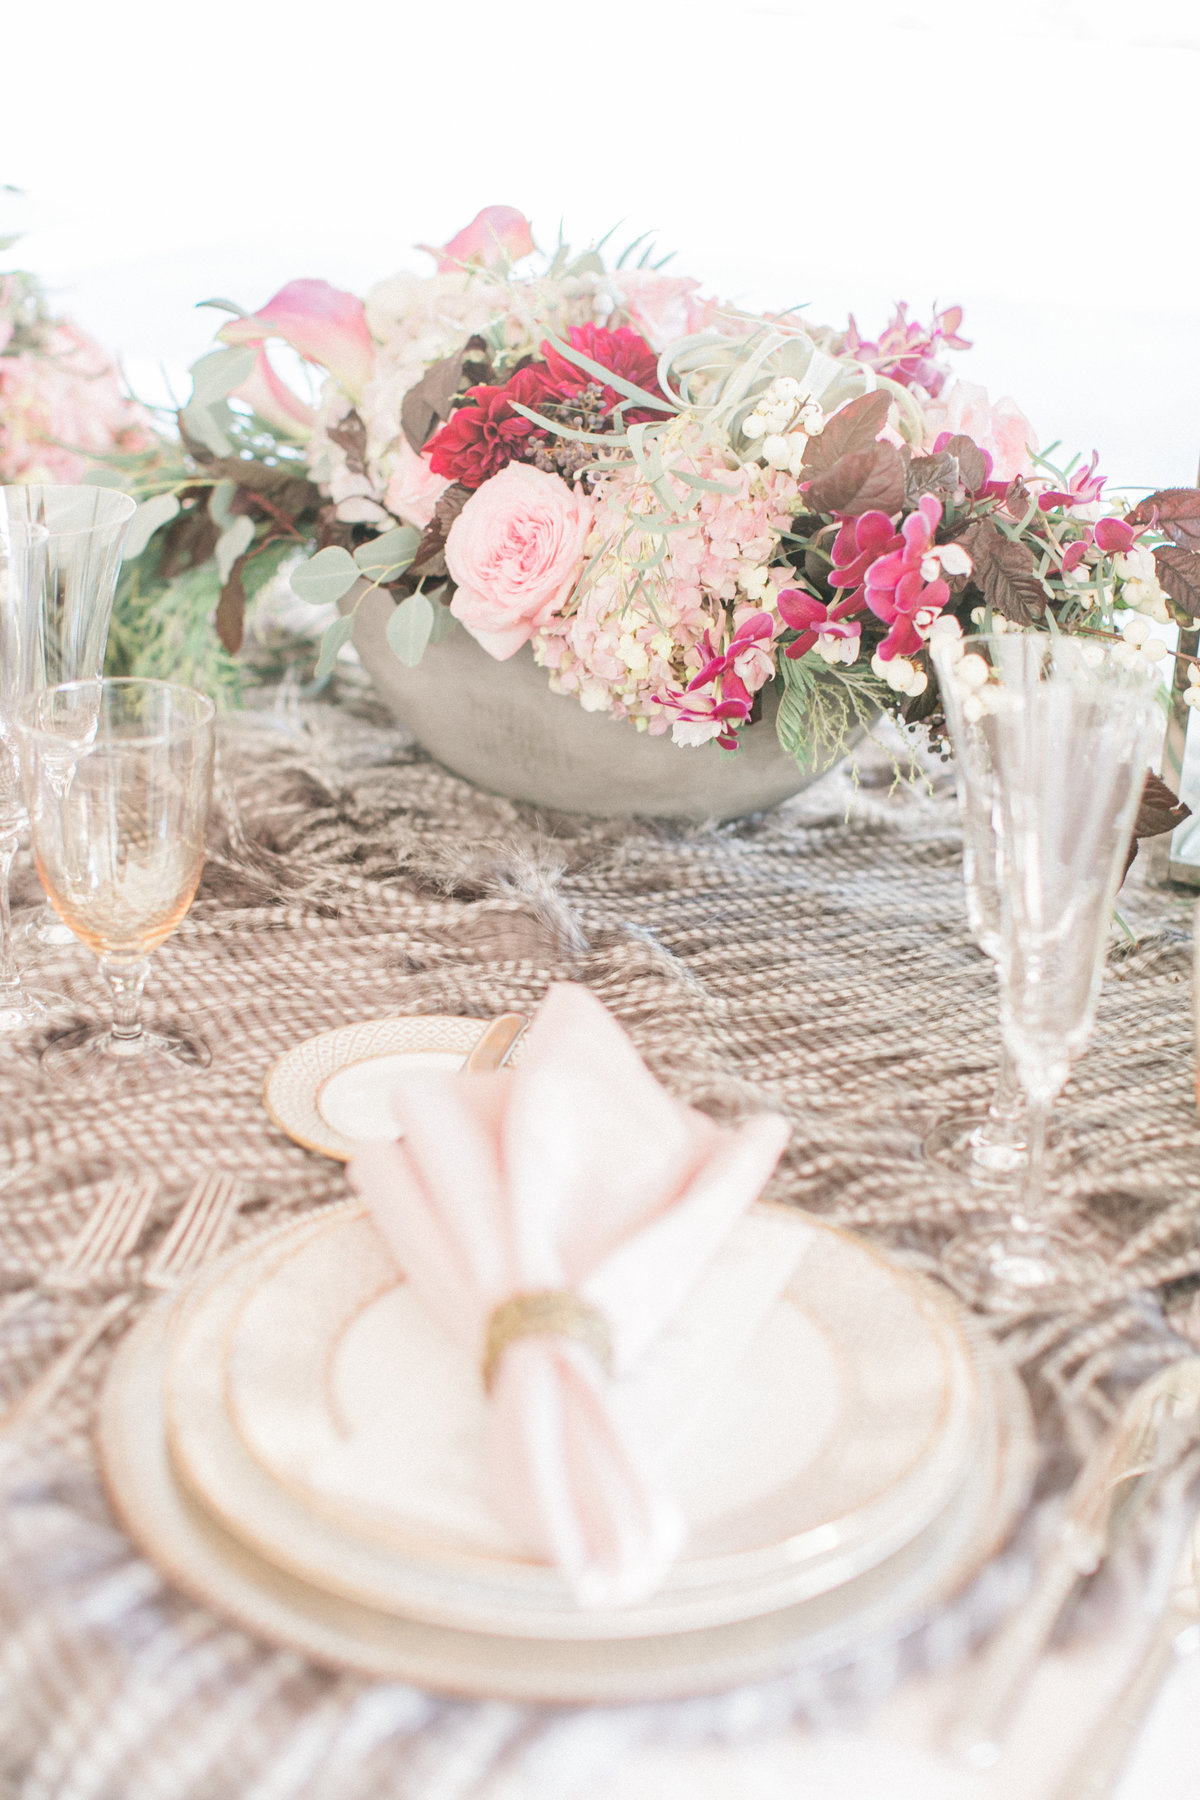 Rustic Chic Textured Table Setting